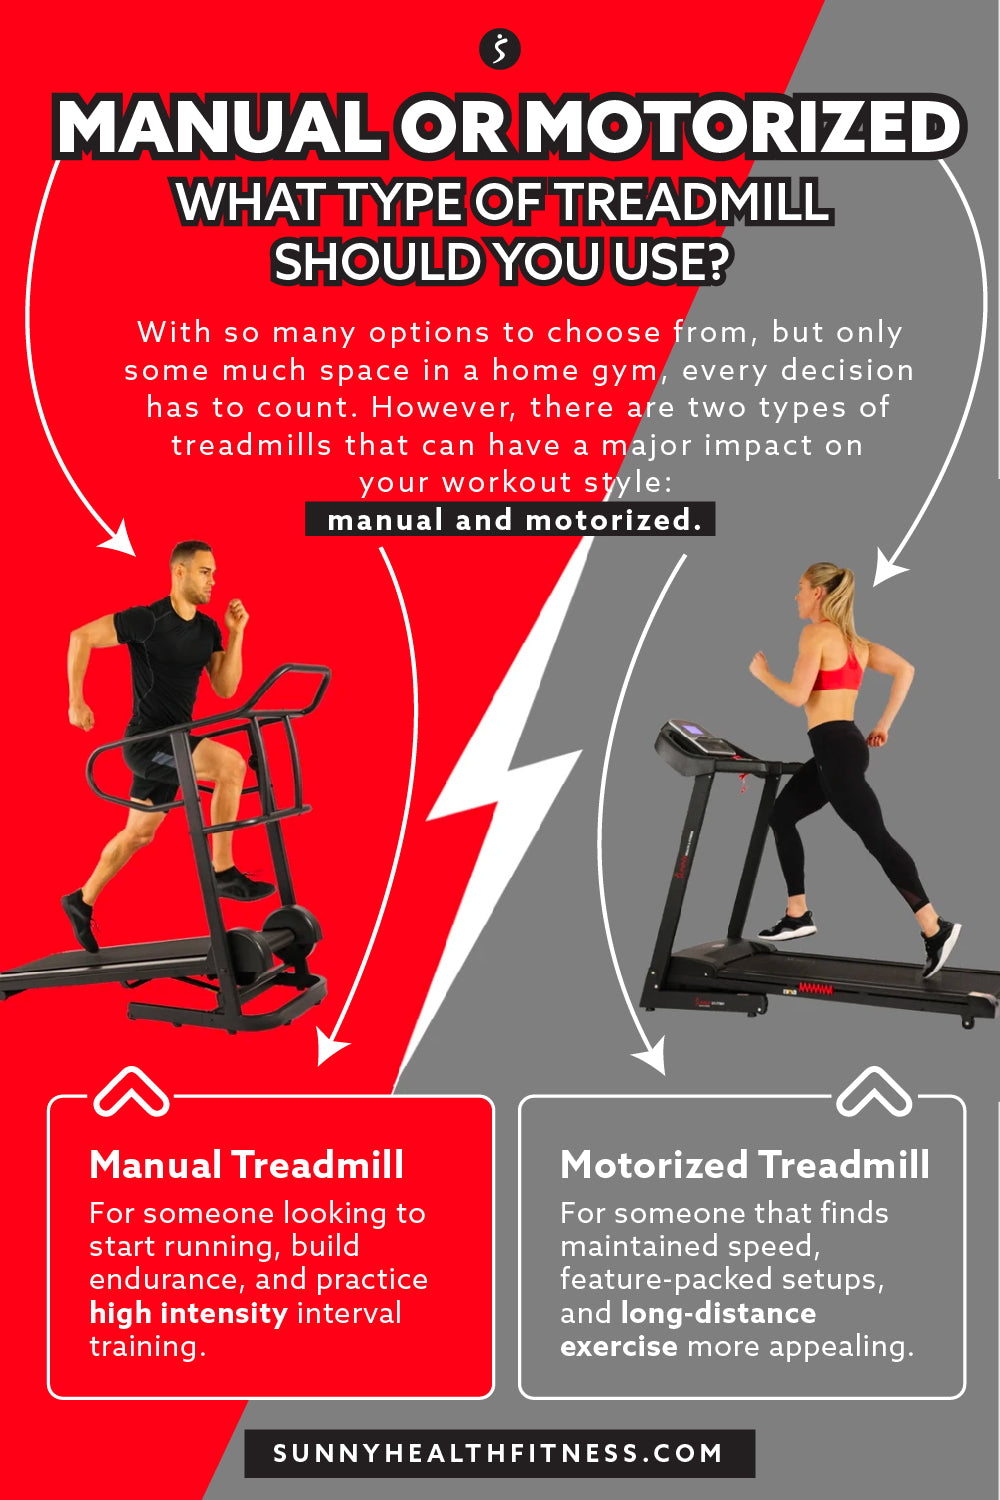 Manual or Motorized Treadmill Infographic